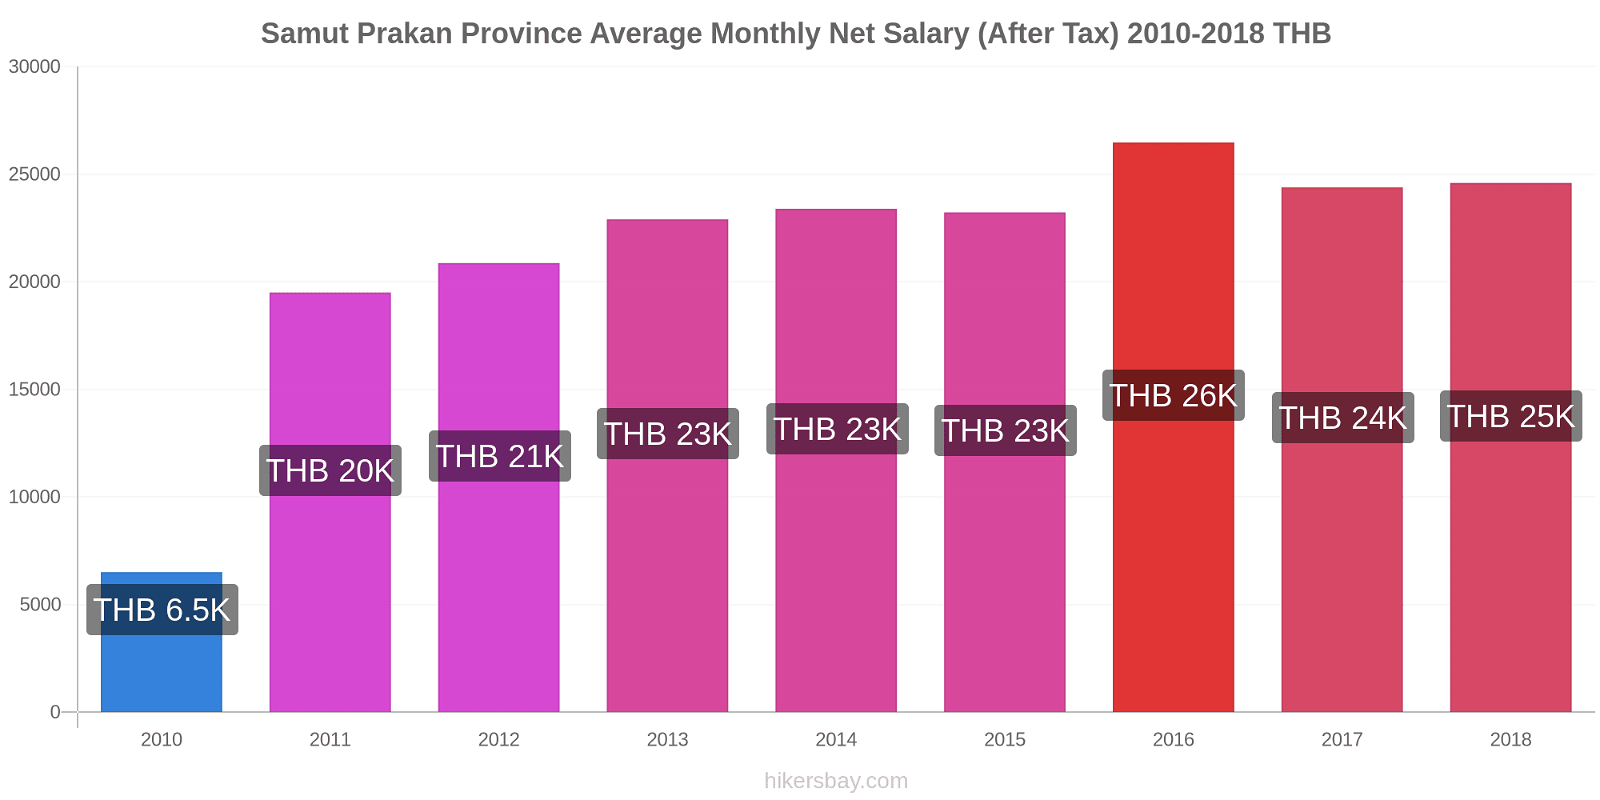 Samut Prakan Province price changes Average Monthly Net Salary (After Tax) hikersbay.com